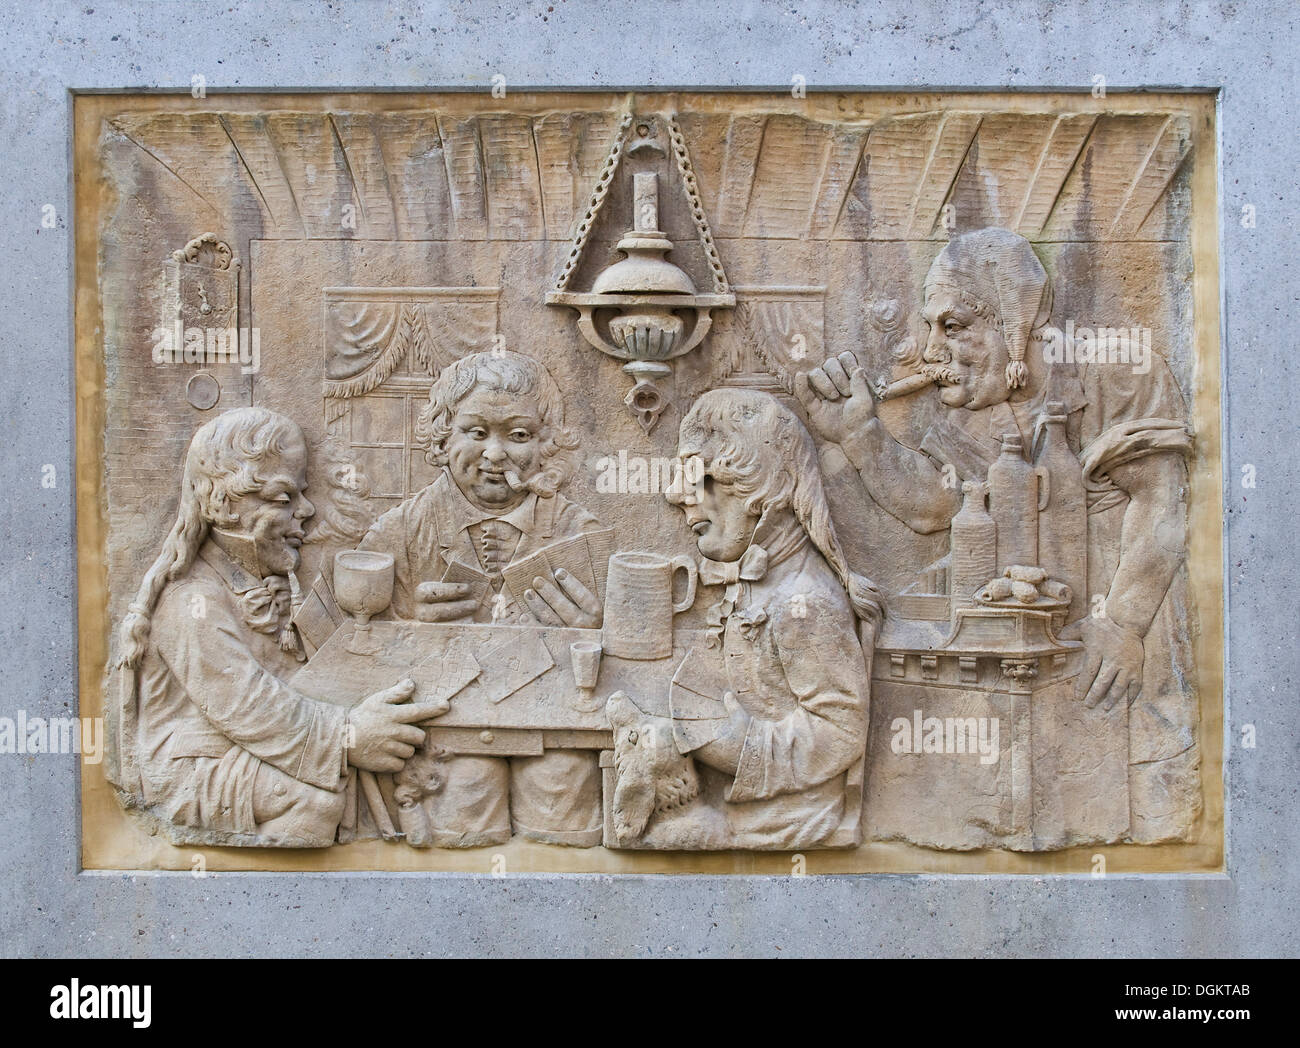 Stone tablet, relief, card players in the inn, Koblenz, Rhineland-Palatinate, PublicGround - Stock Image